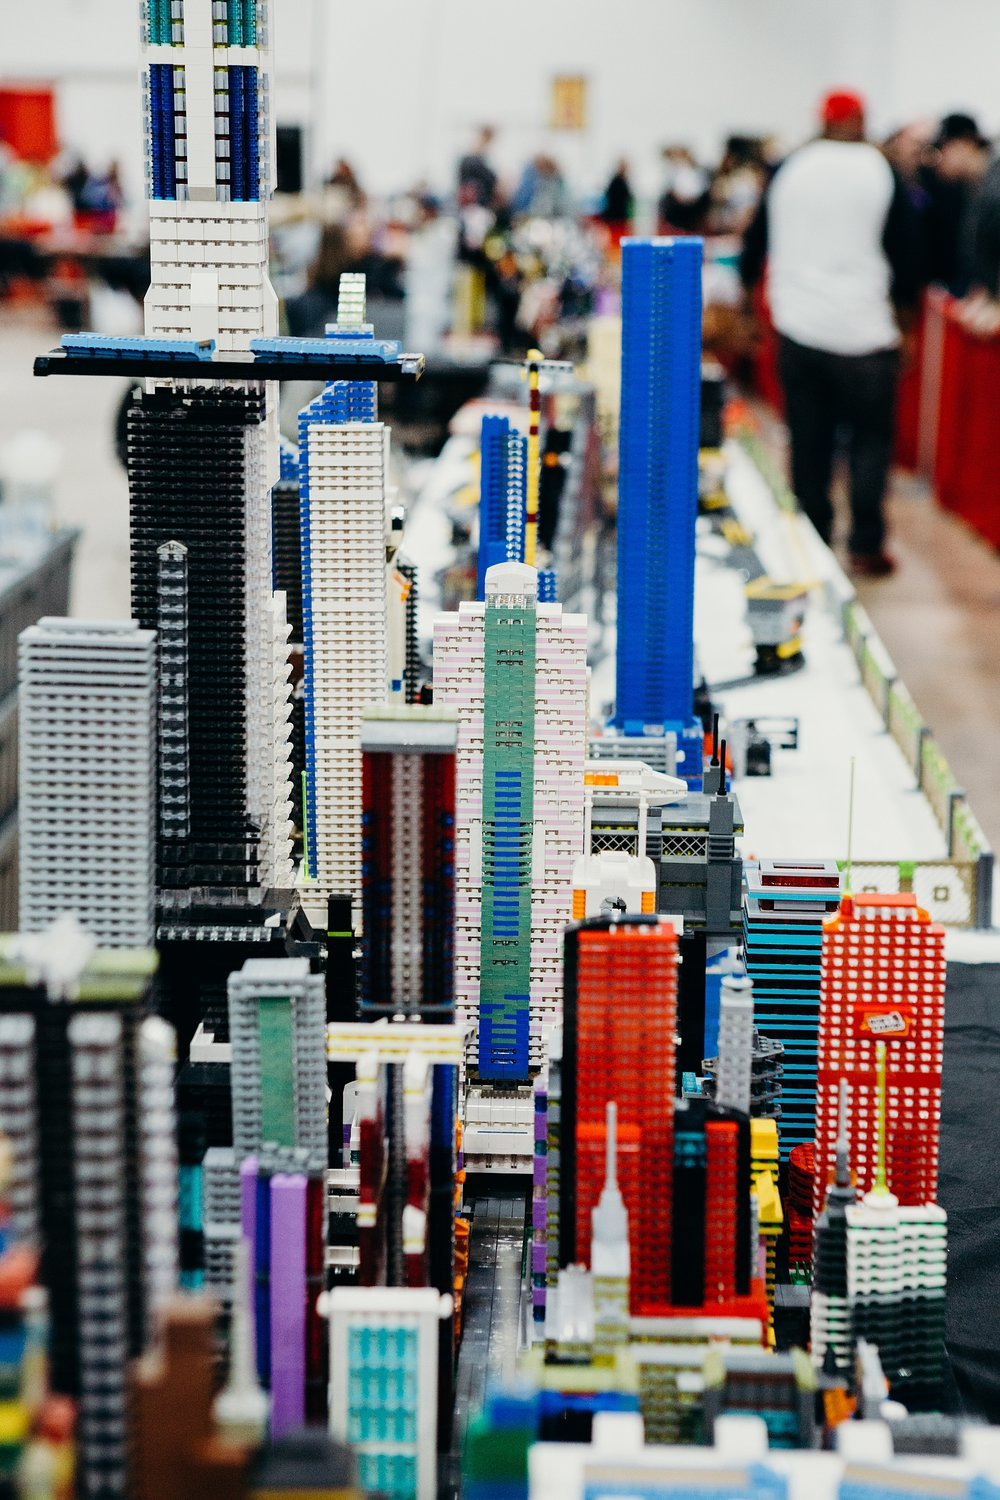 Joe_mac_Creative_Photography_Lego_Convention_Expo_Philadelphia__0021.jpg